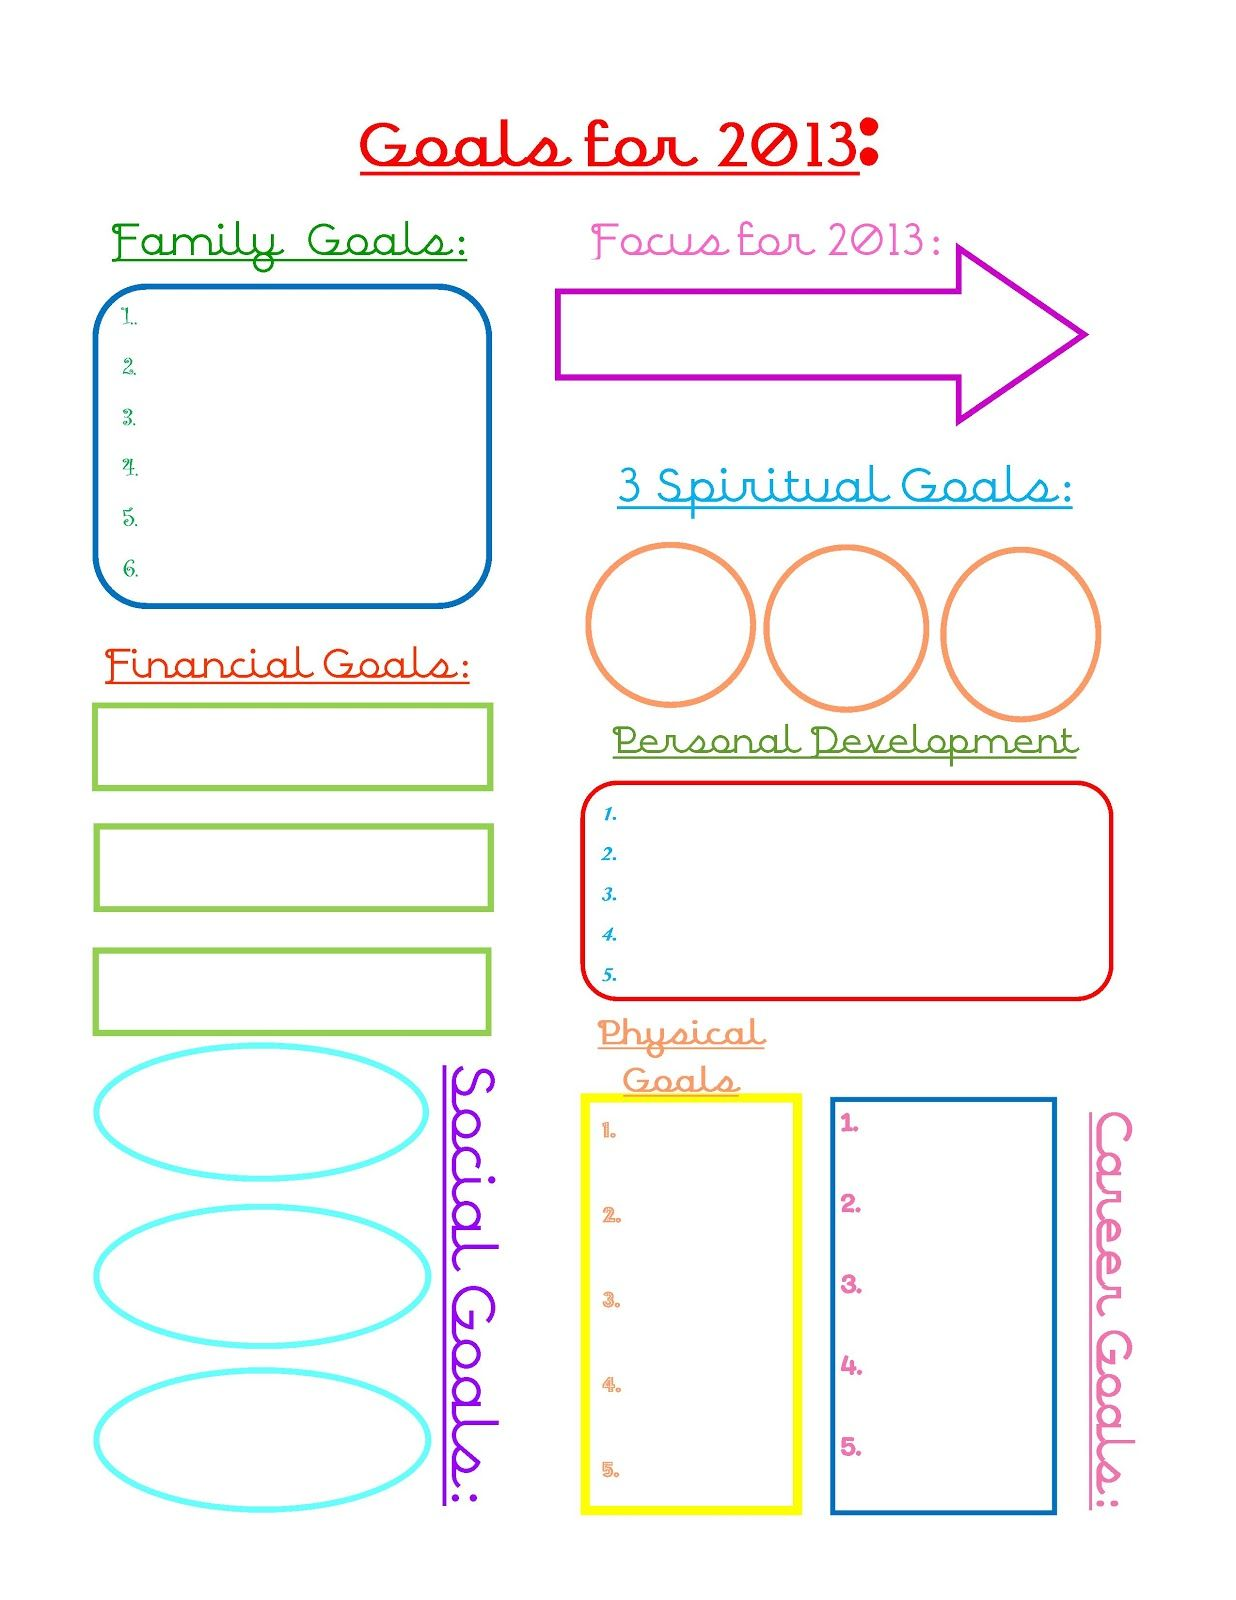 Worksheets Goal Setting Worksheet For Students 2013 goal worsheet free printable and goals worksheet worsheet